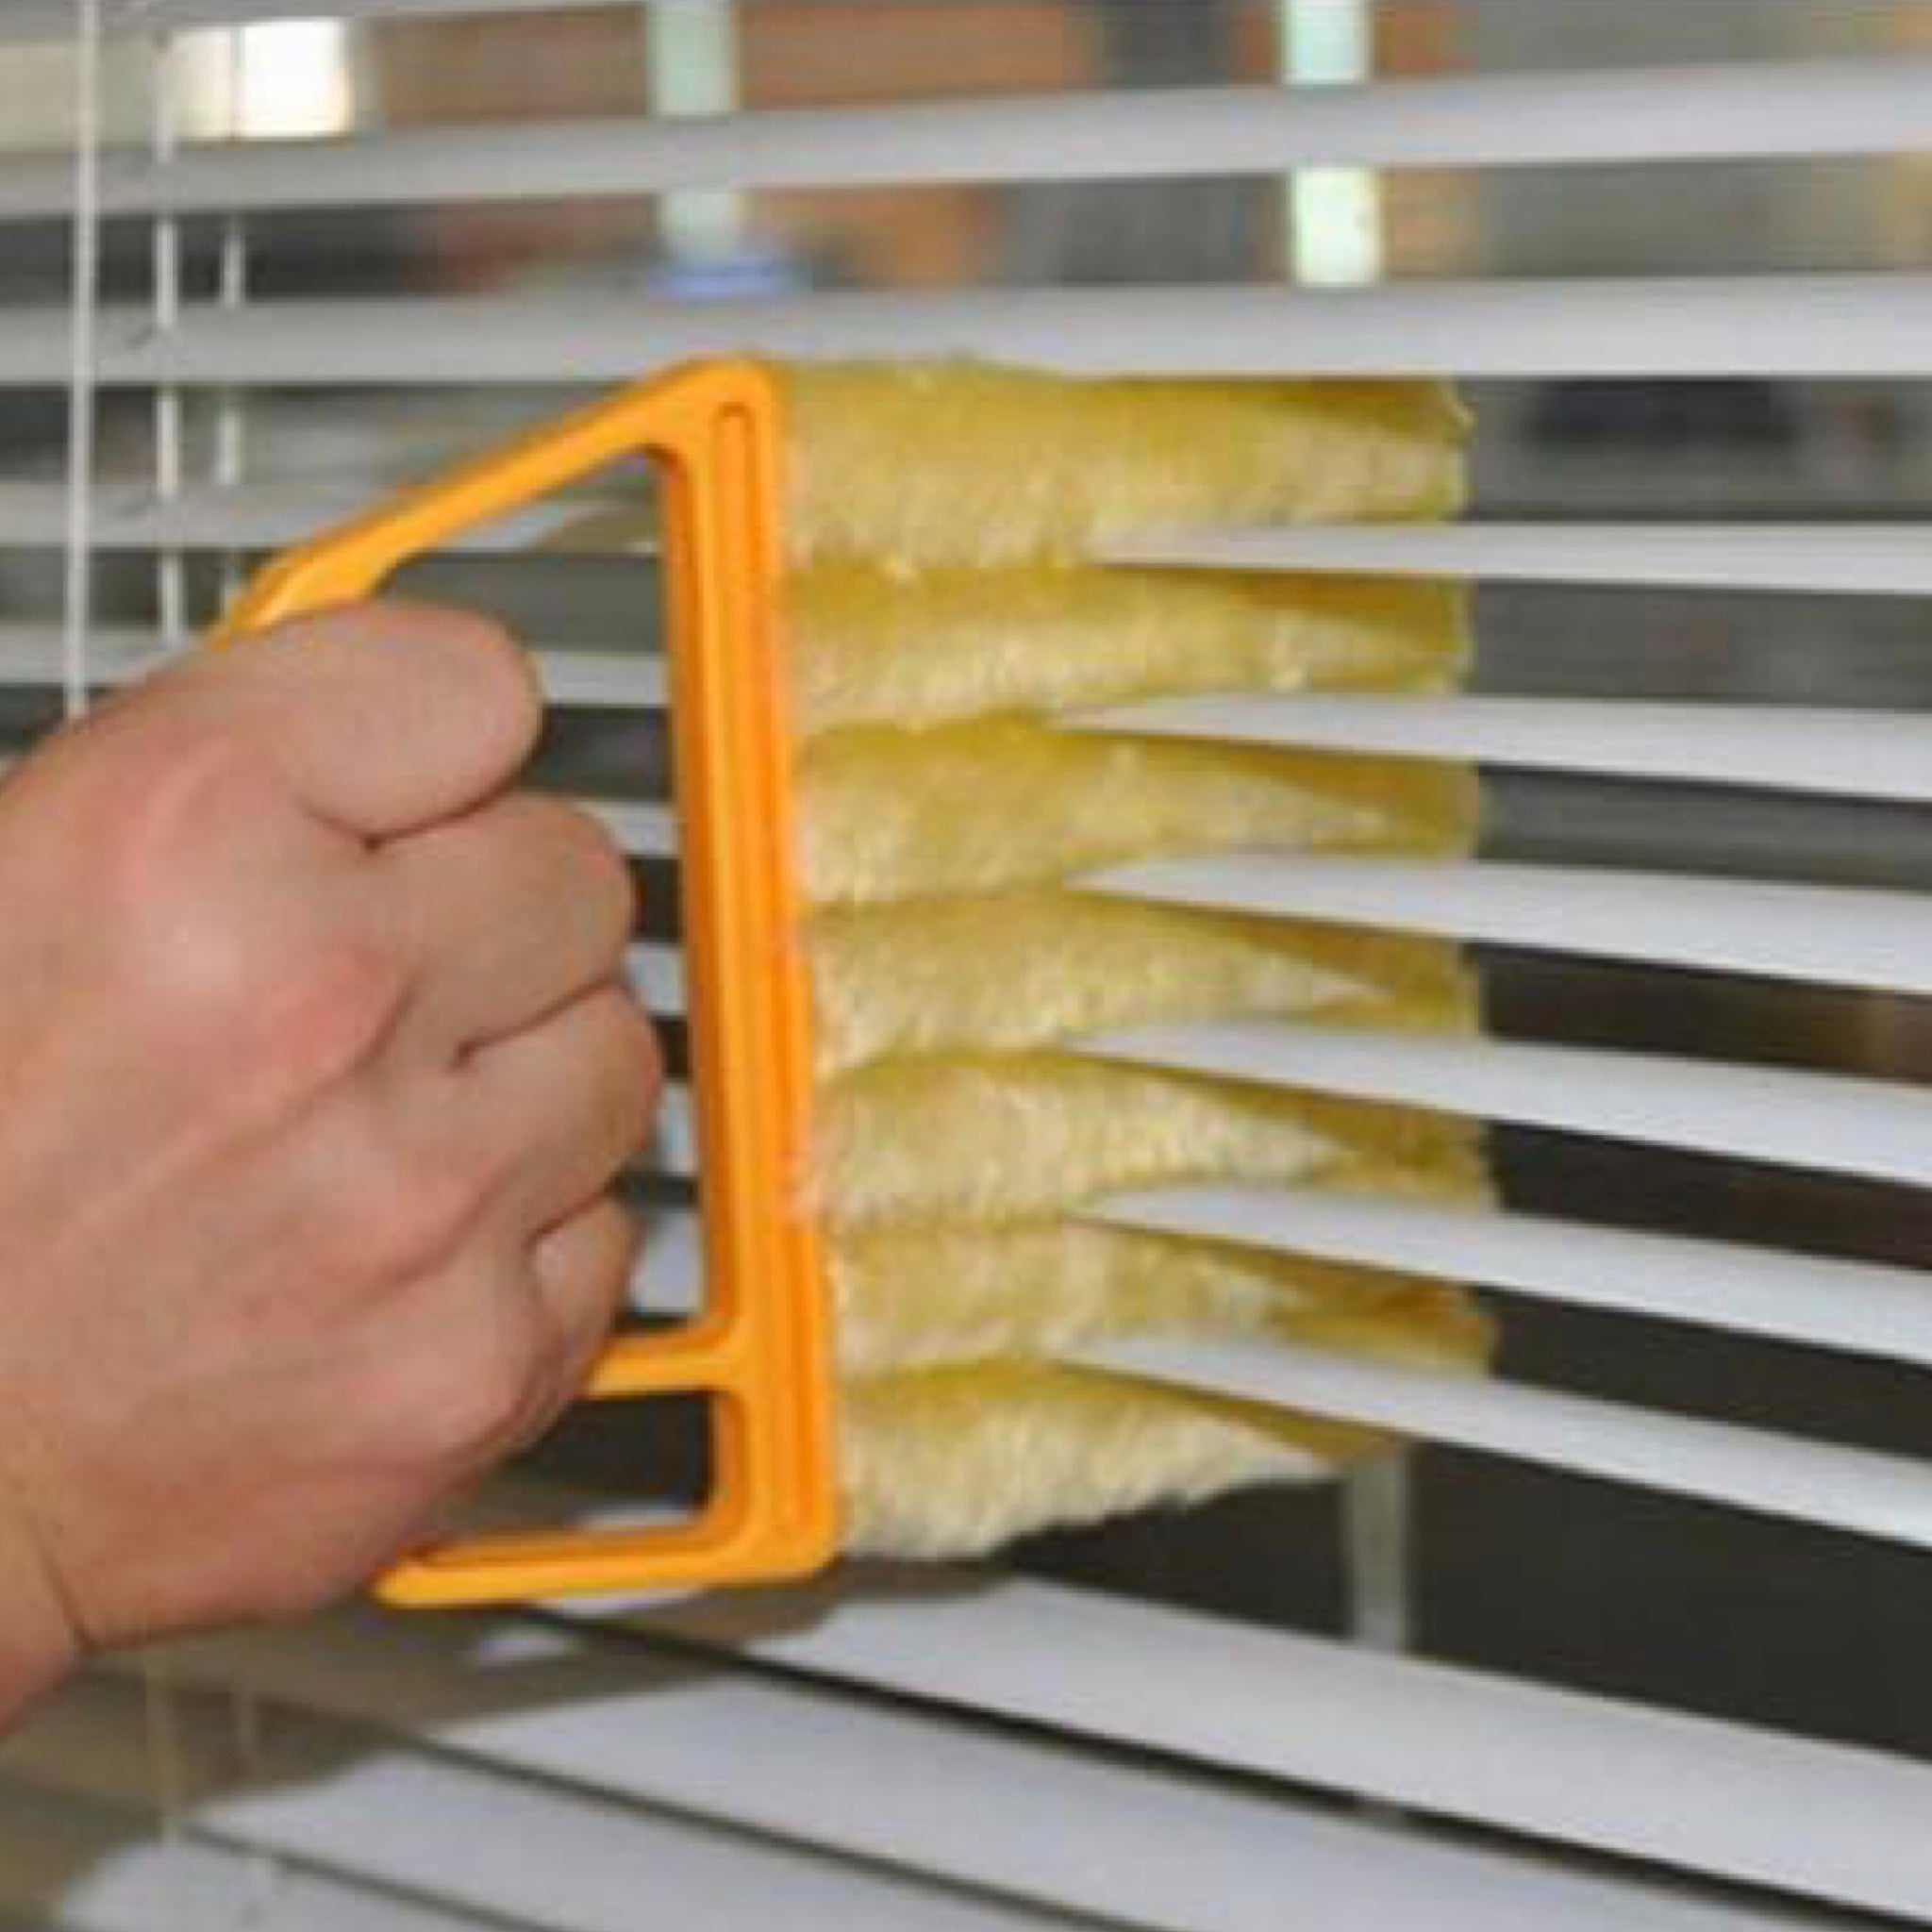 Window Blind Cleaning Brush Venetian blinds cleaner Household Cleaning Tools